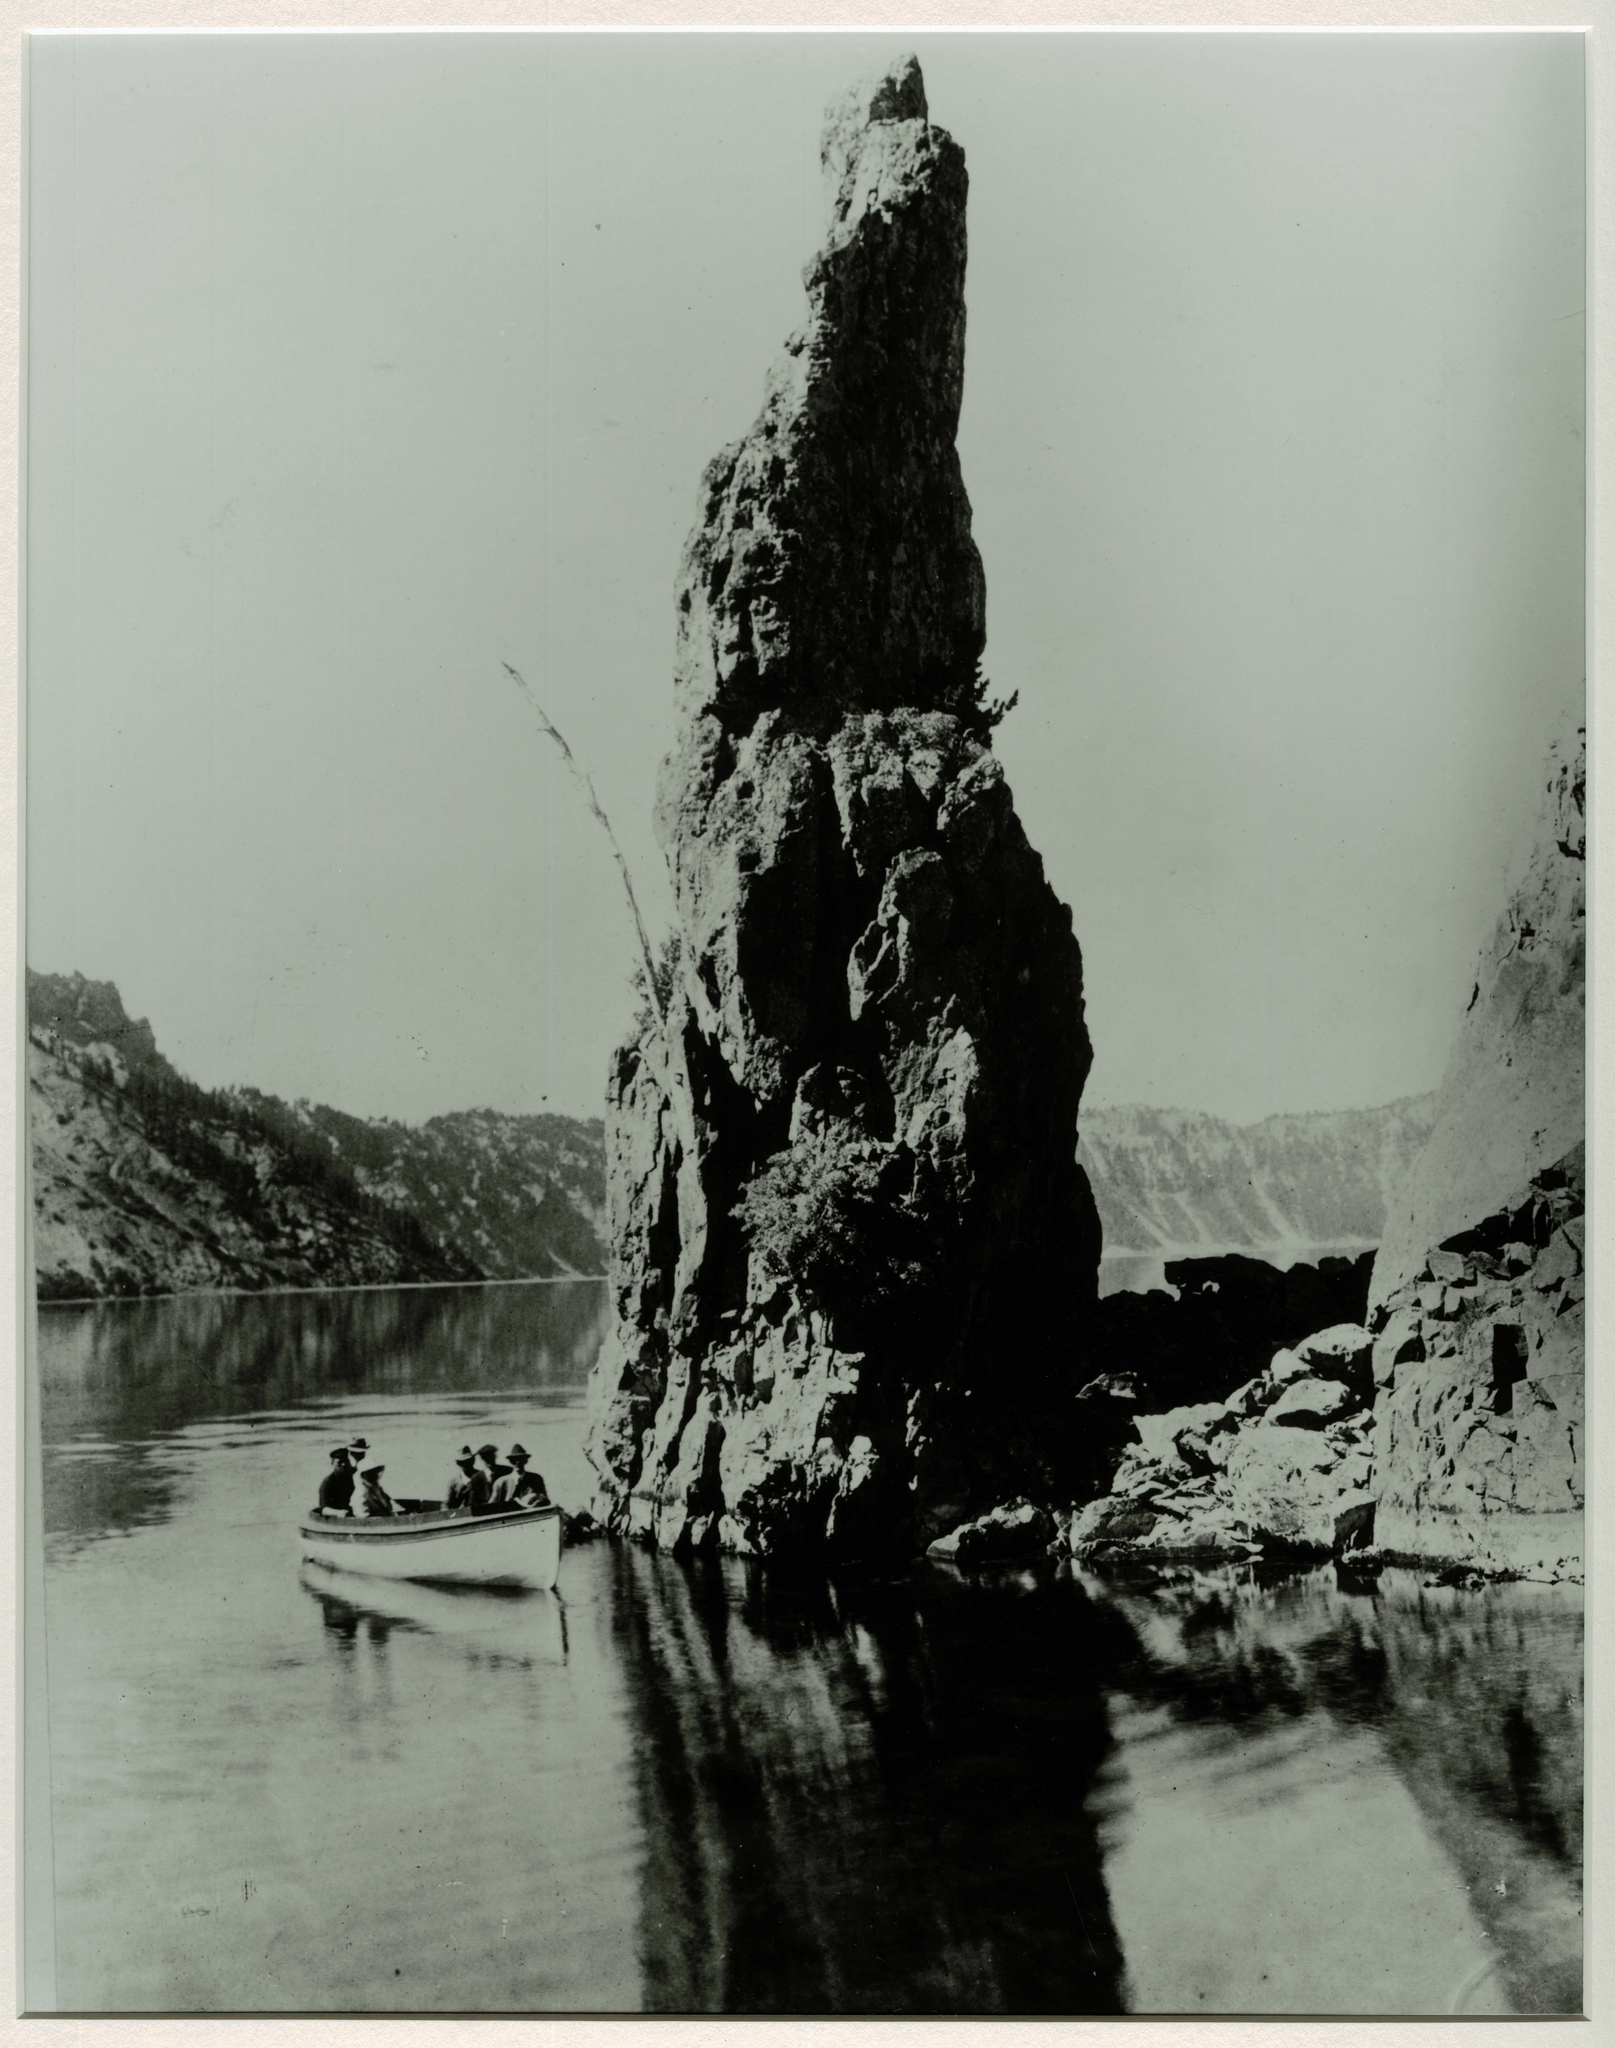 Boat tours rounding a portion of Pantom Ship. Photographed by J.S. Diller in the 1890s or 1901 during the USGS survey of the Crater Lake area.   Credit: Courtesy CRLA Museum & Archive Collections